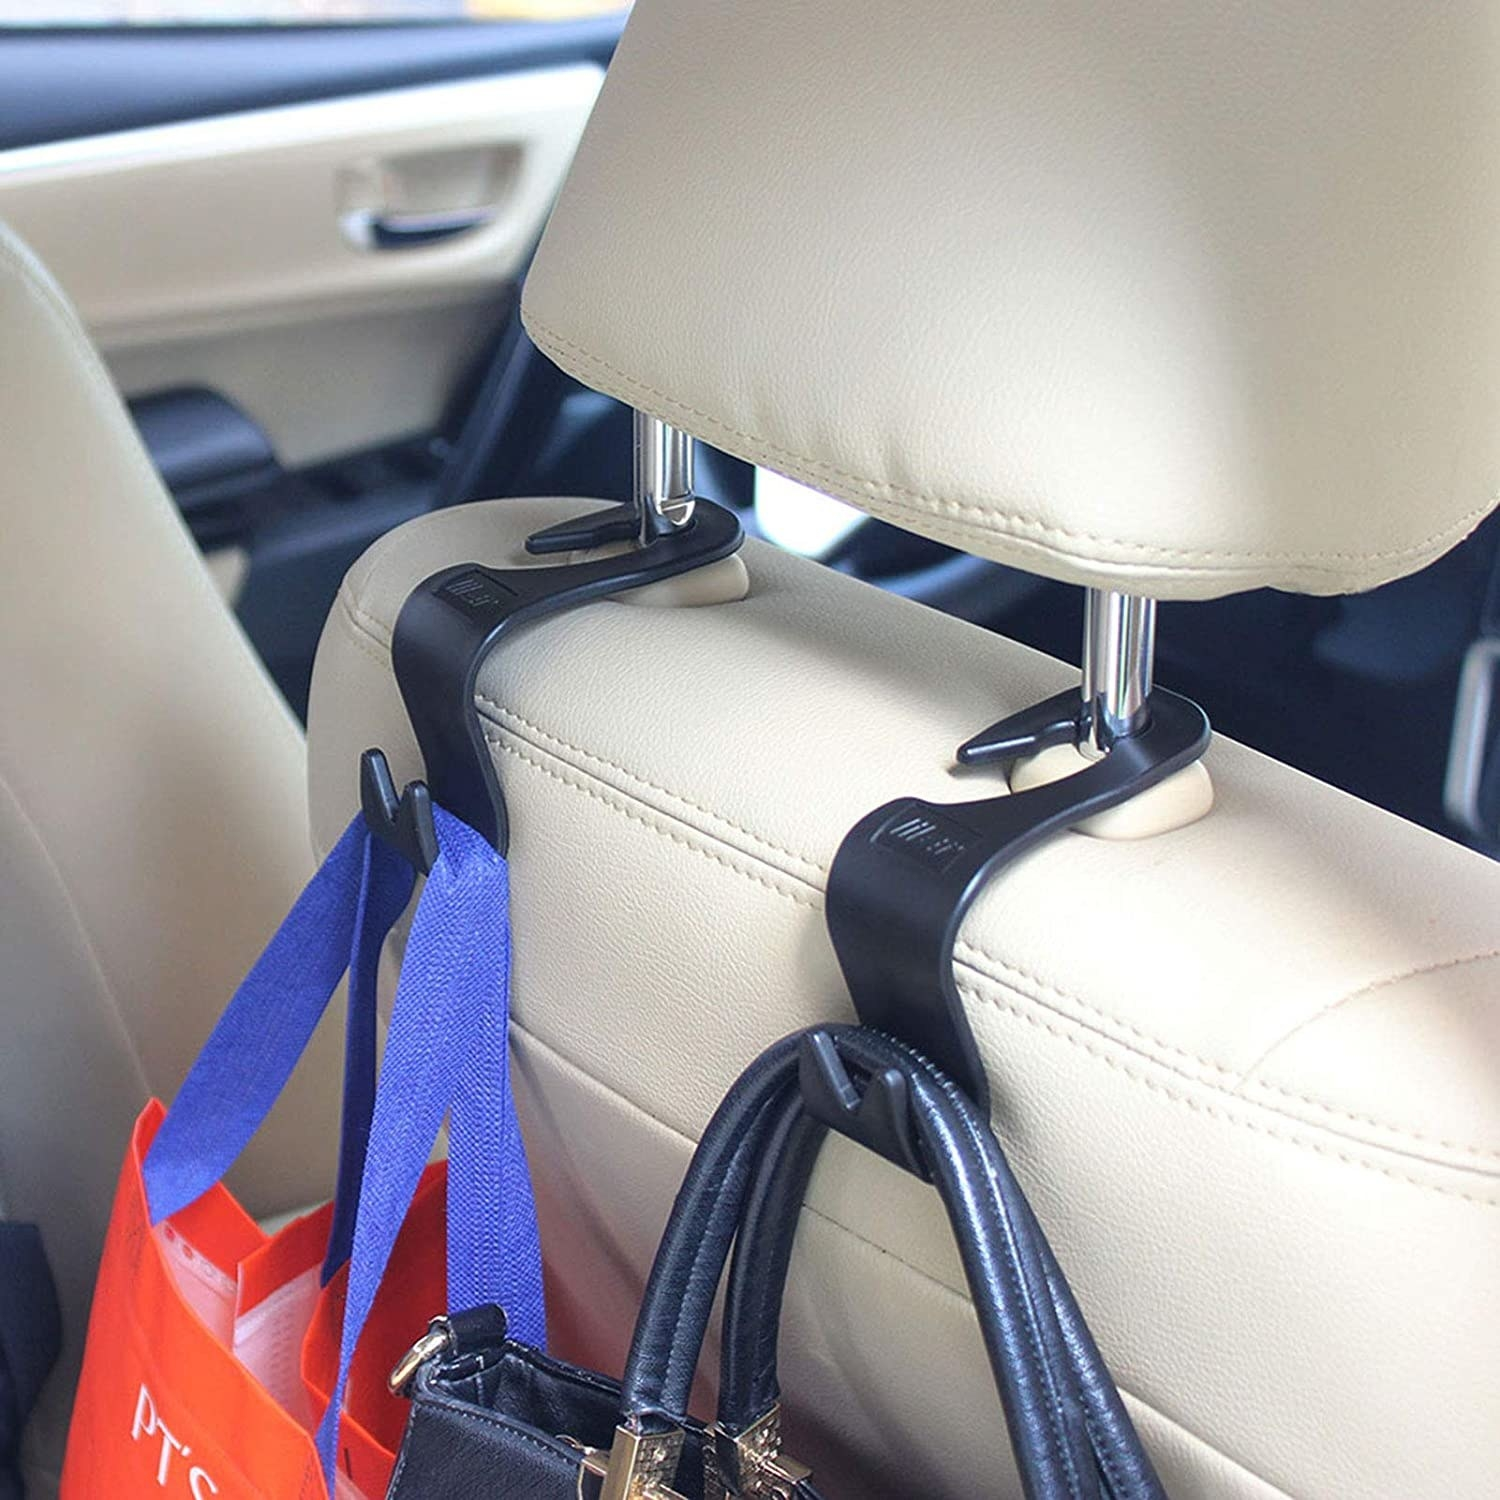 A duo of hangers attached to the headrest of a car seat